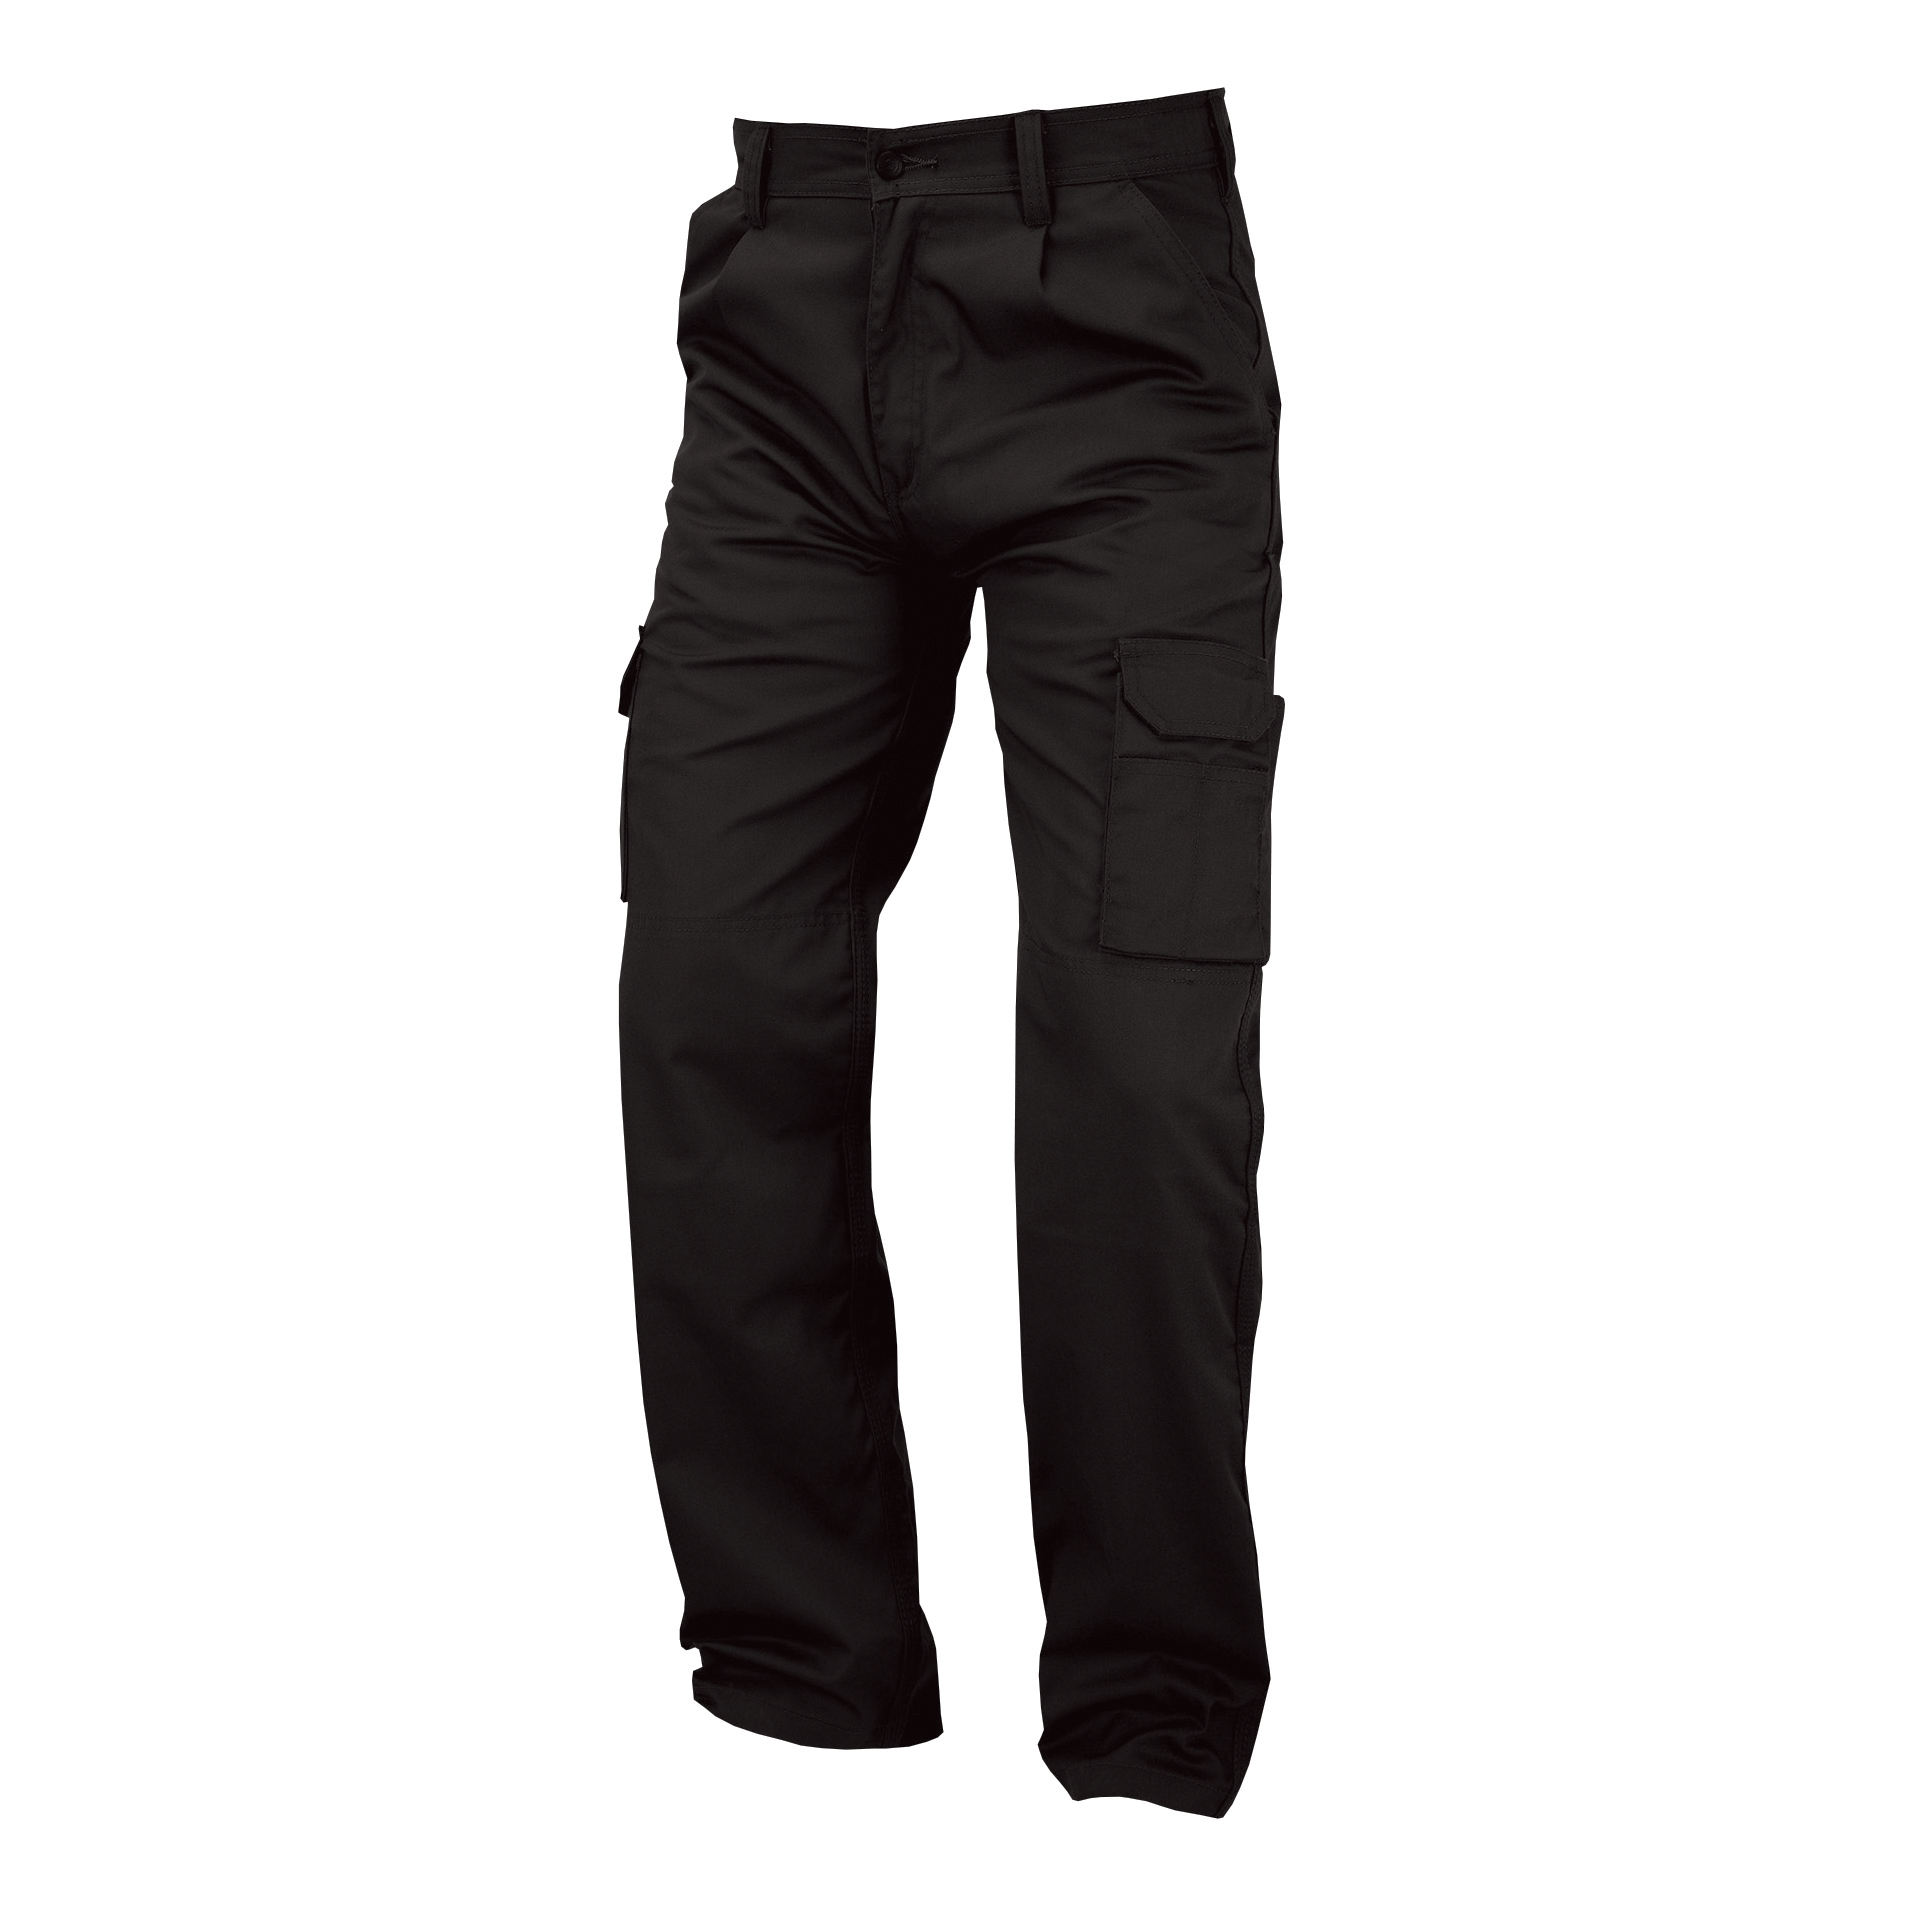 Combat / Cargo Combat Trousers Polycotton with Pockets 40in Regular Black Ref PCTHWBL40 *1-3 Days Lead Time*